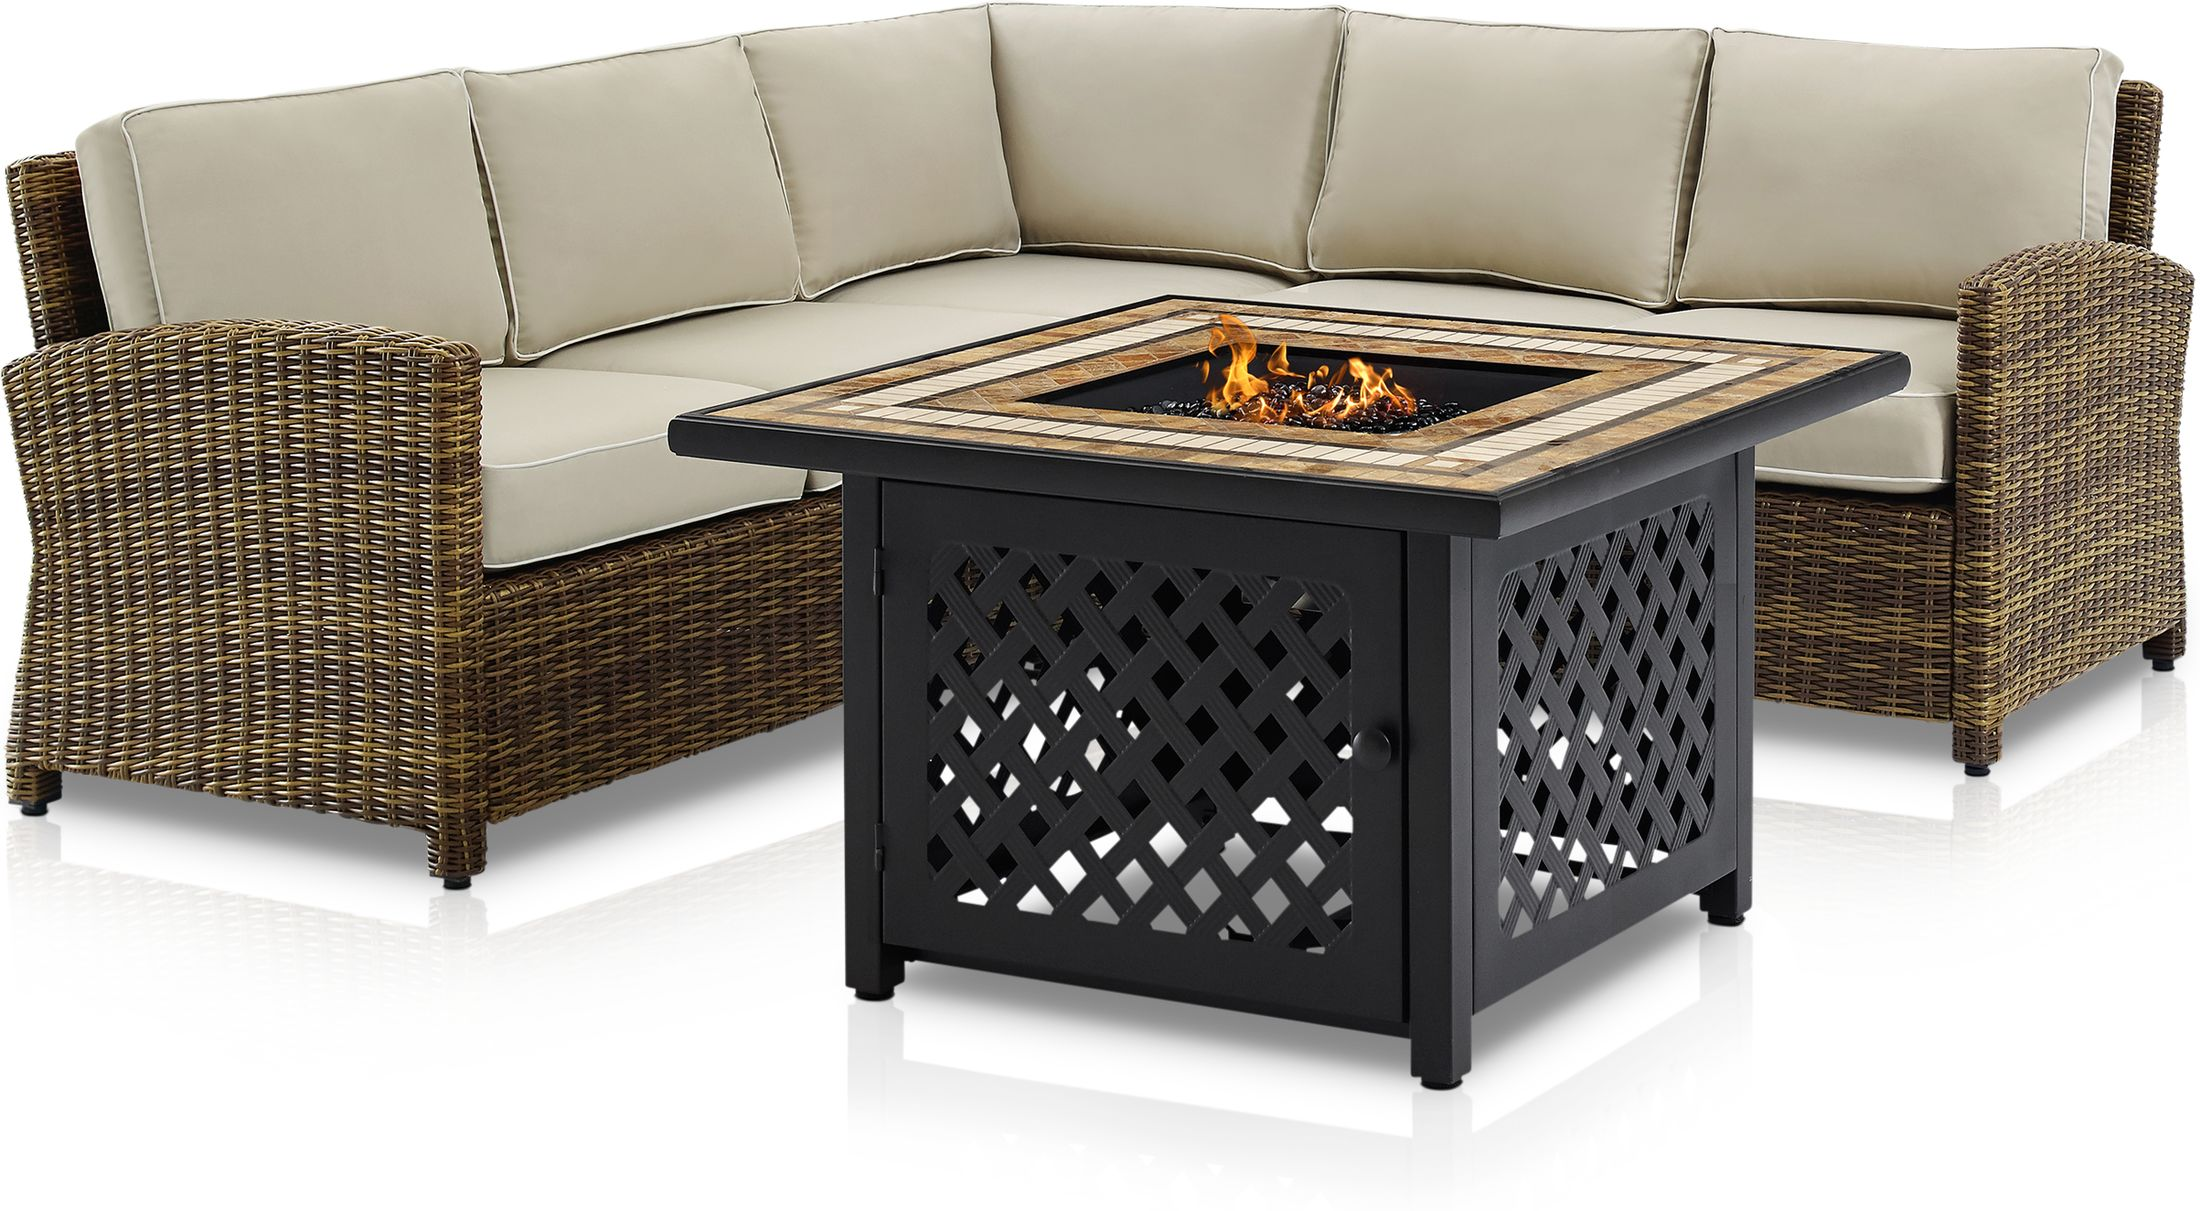 Outdoor Furniture - Destin 3-Piece Outdoor Sectional and Fire Table Set